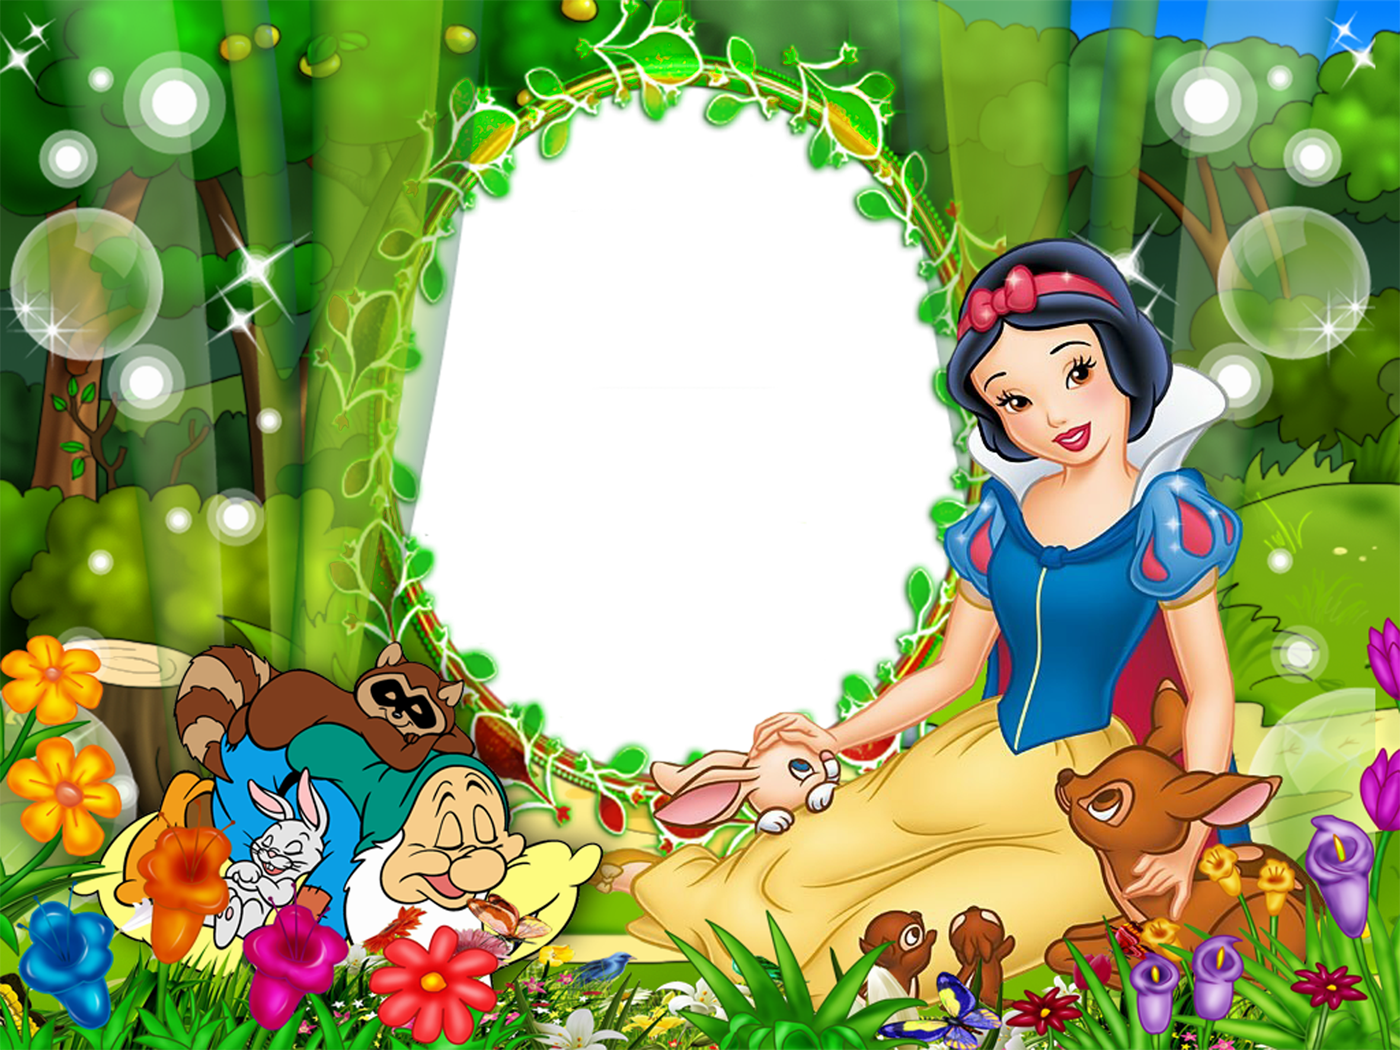 Cute Snow White Kids Transparen Png Photo Frame Gallery Yopriceville High Quality Images And Transparent Snow White Disney Frames Disney Princess Pictures